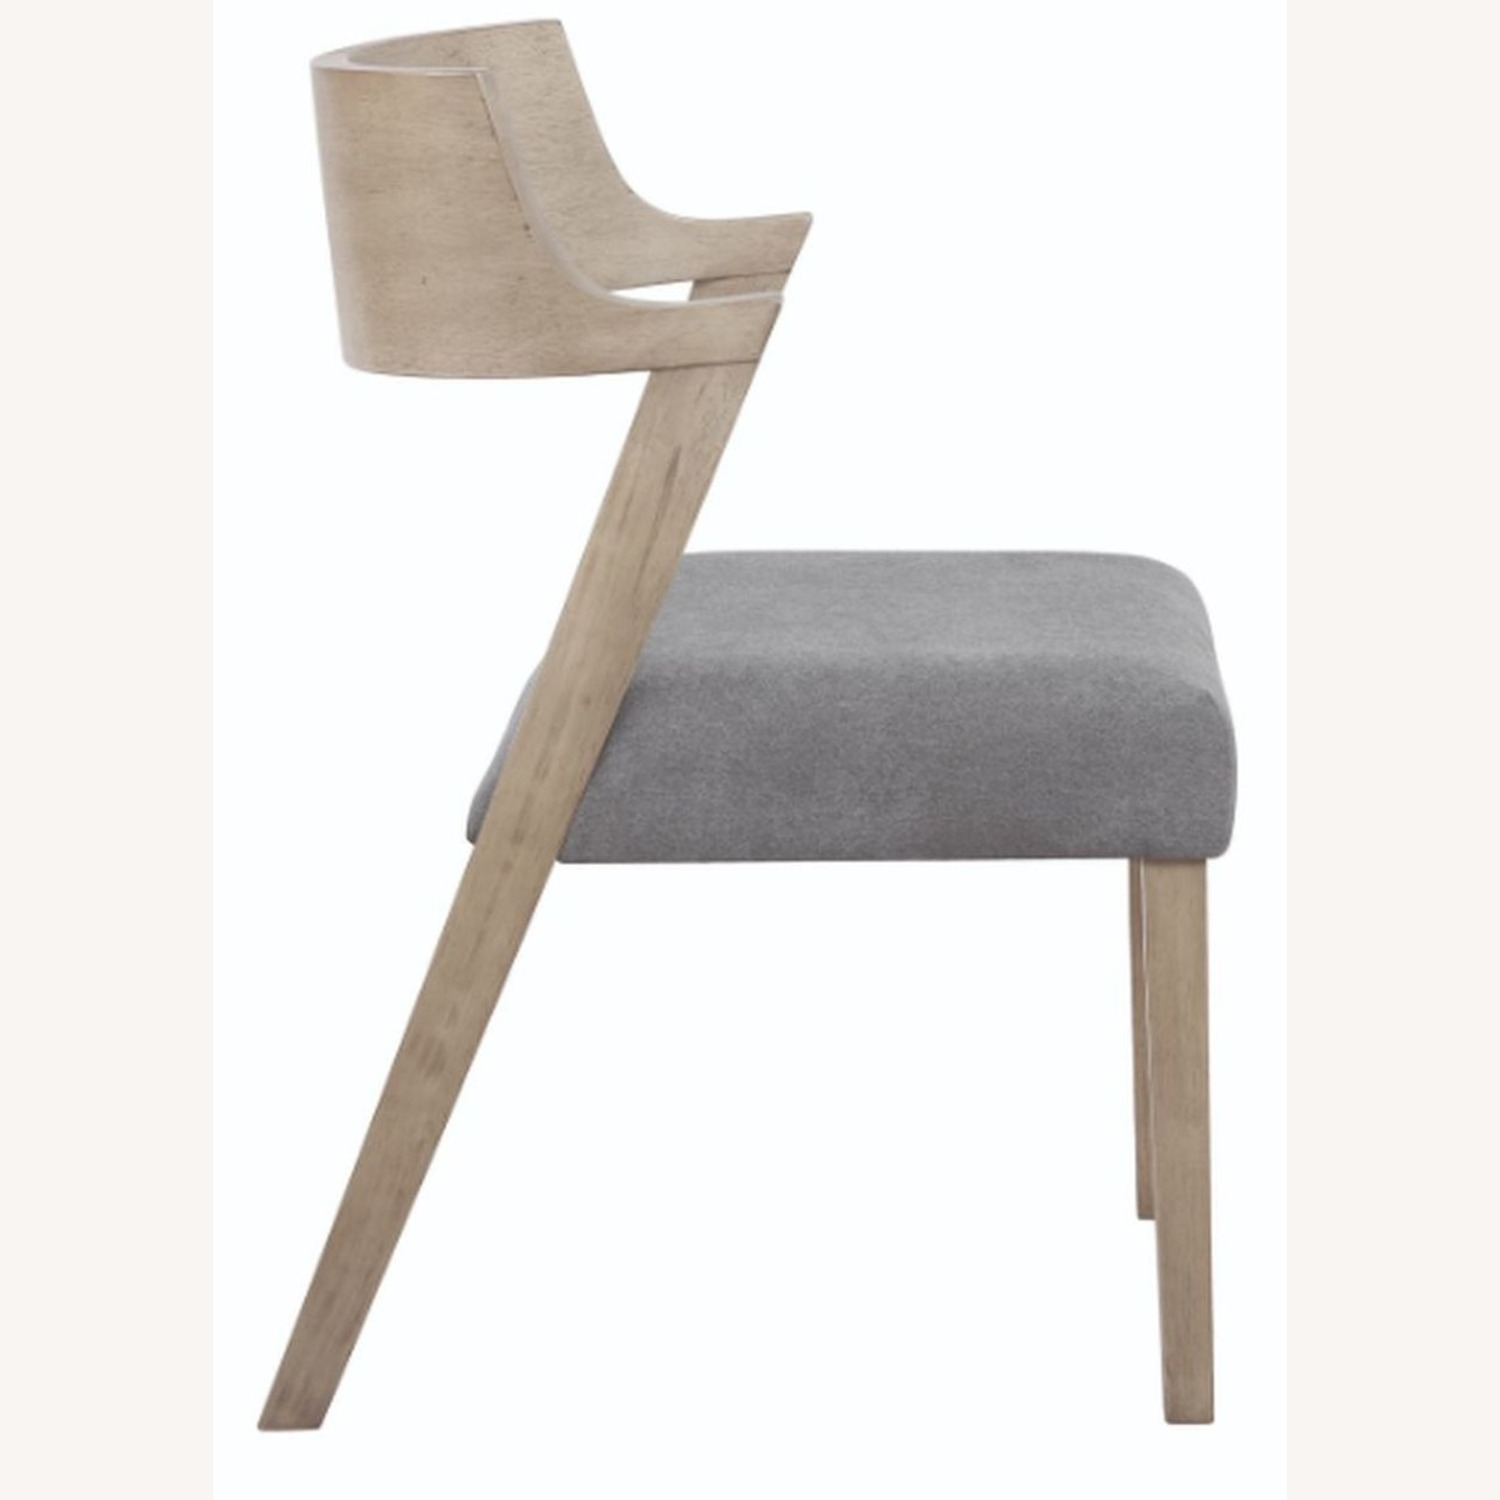 Contemporary Side Chair In Grey Oak Finish - image-2